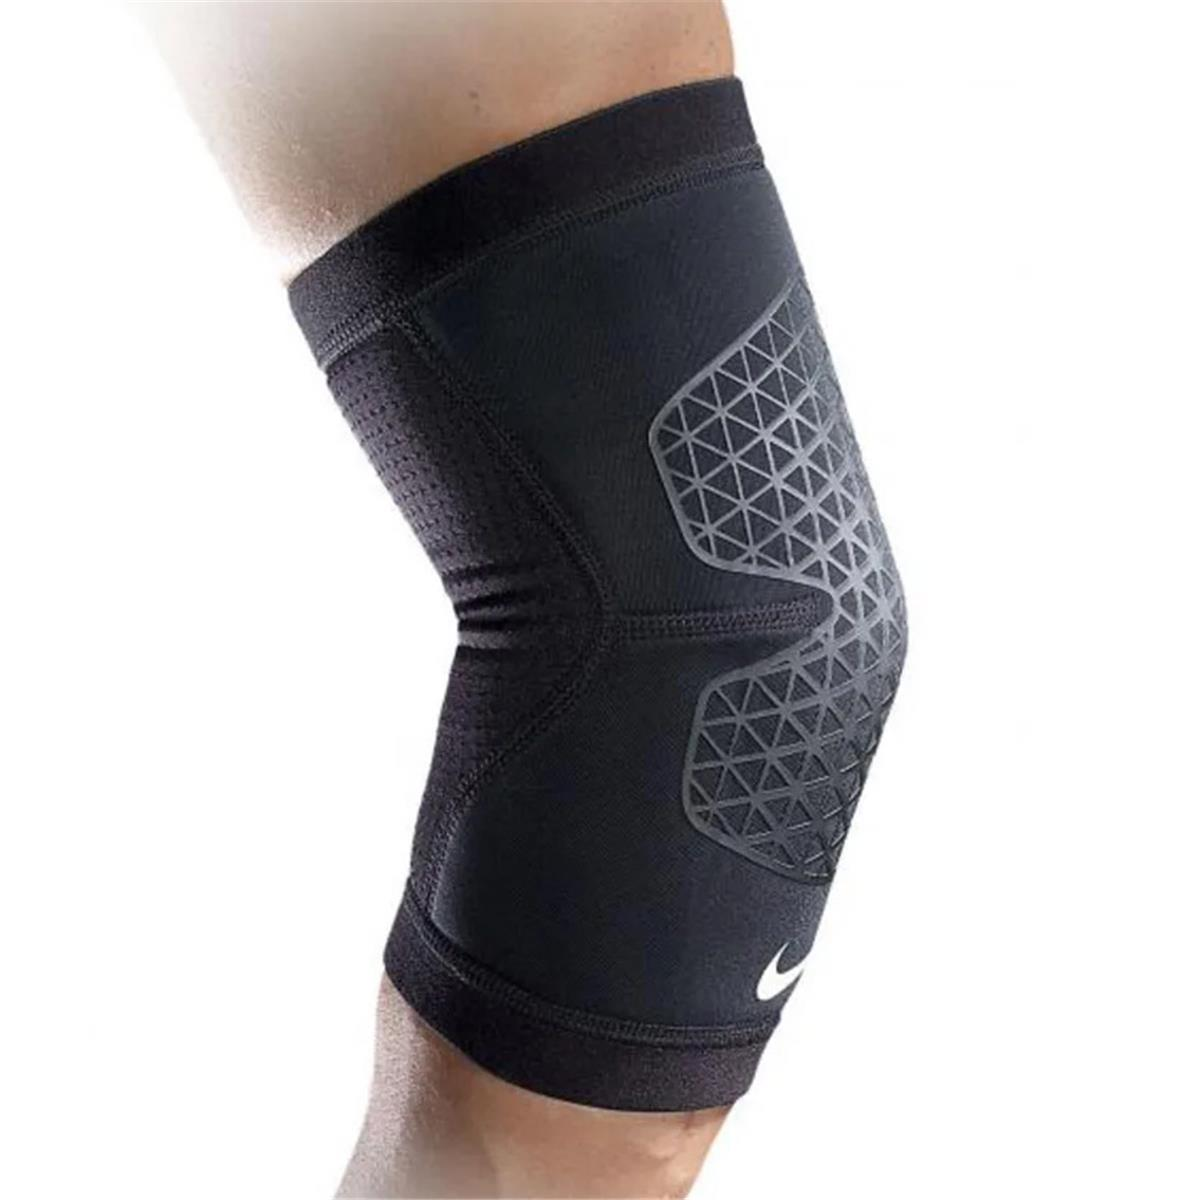 The gallery for --> Nike Compression Knee Sleeve Basketball